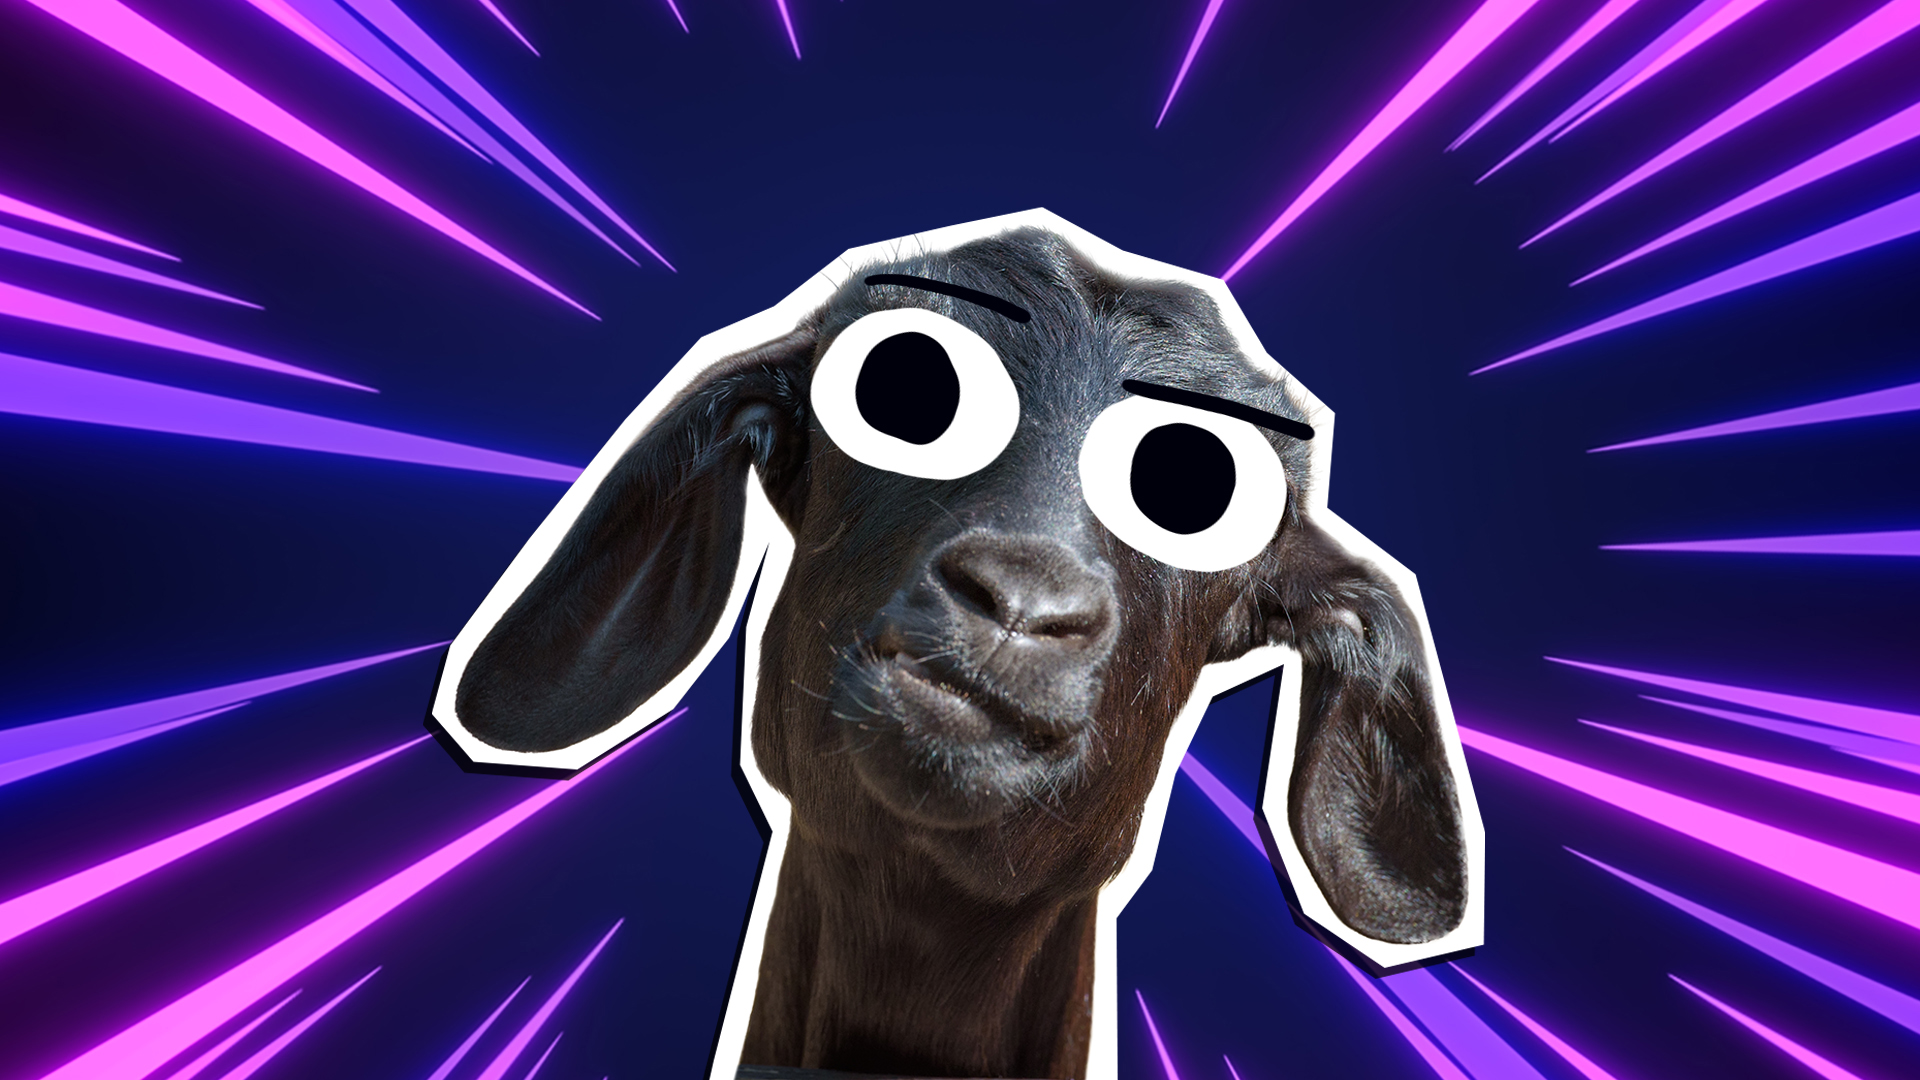 A quizzical looking goat in front of a purple background